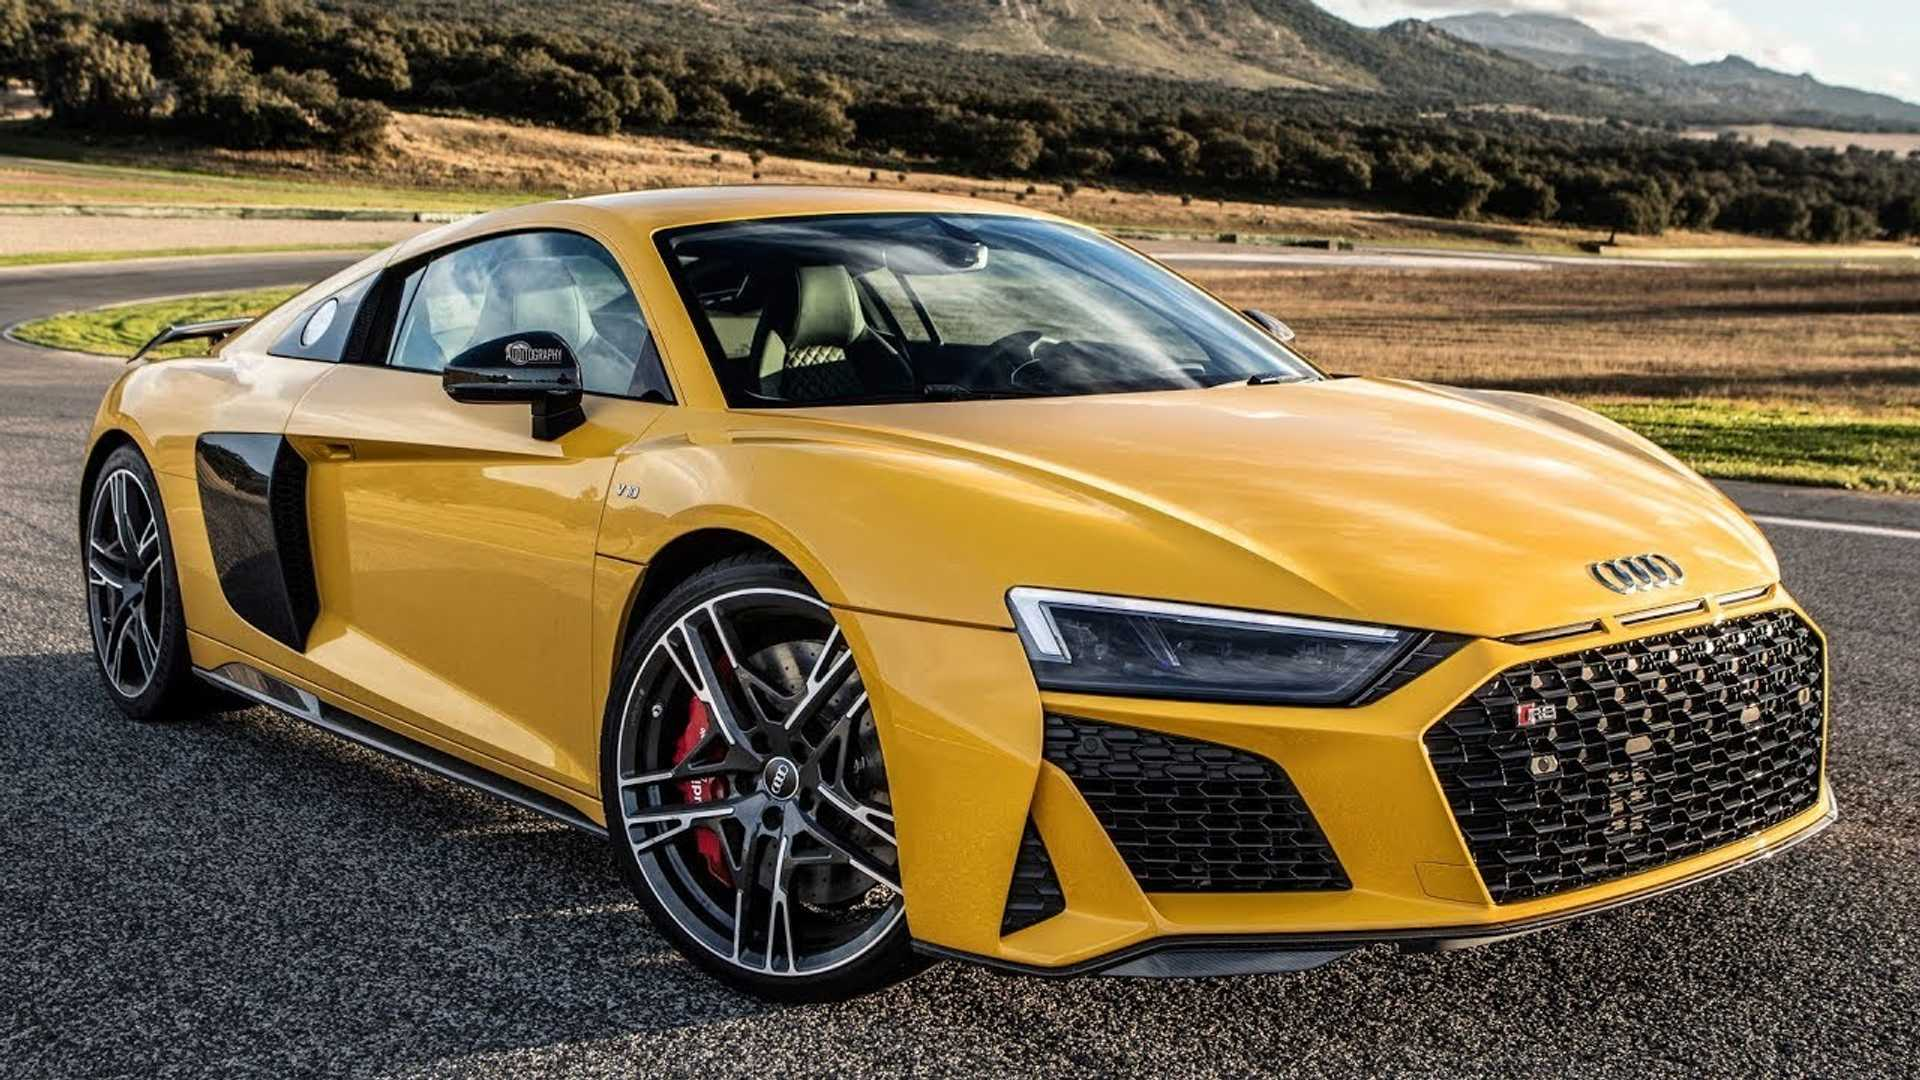 62 All New 2020 Audi R8 V10 Spyder Research New